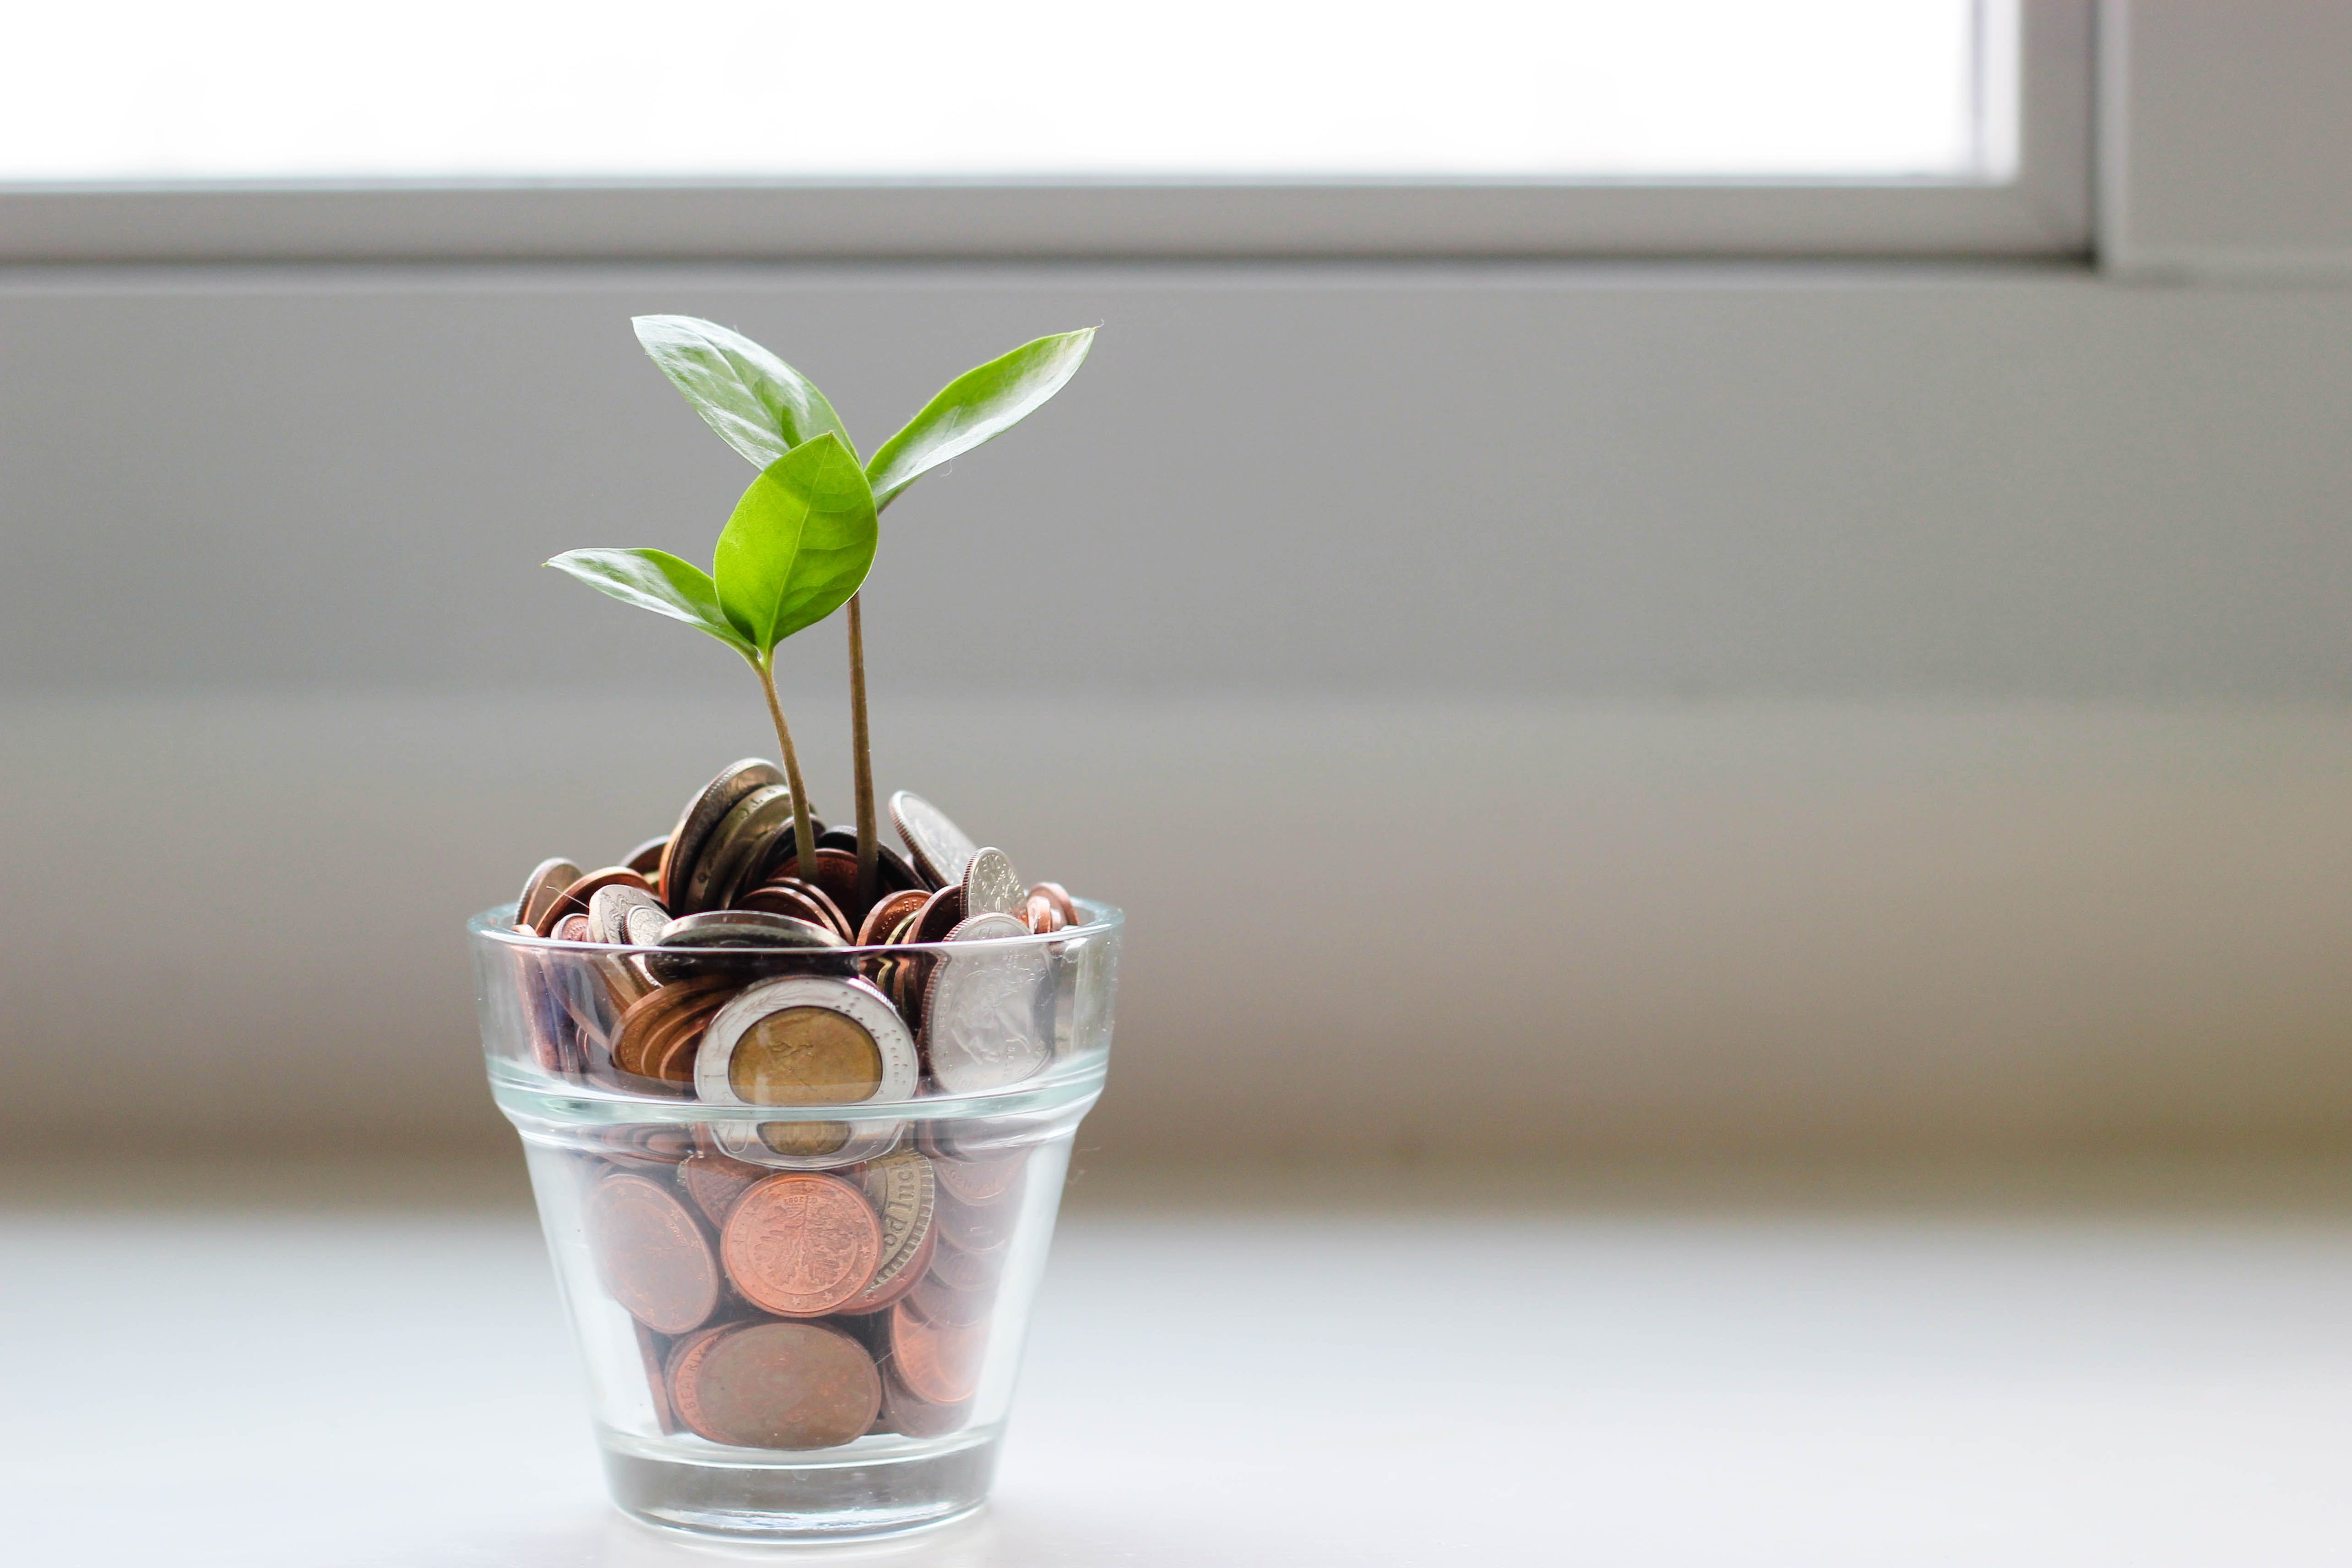 Plant growing from a jar of coins